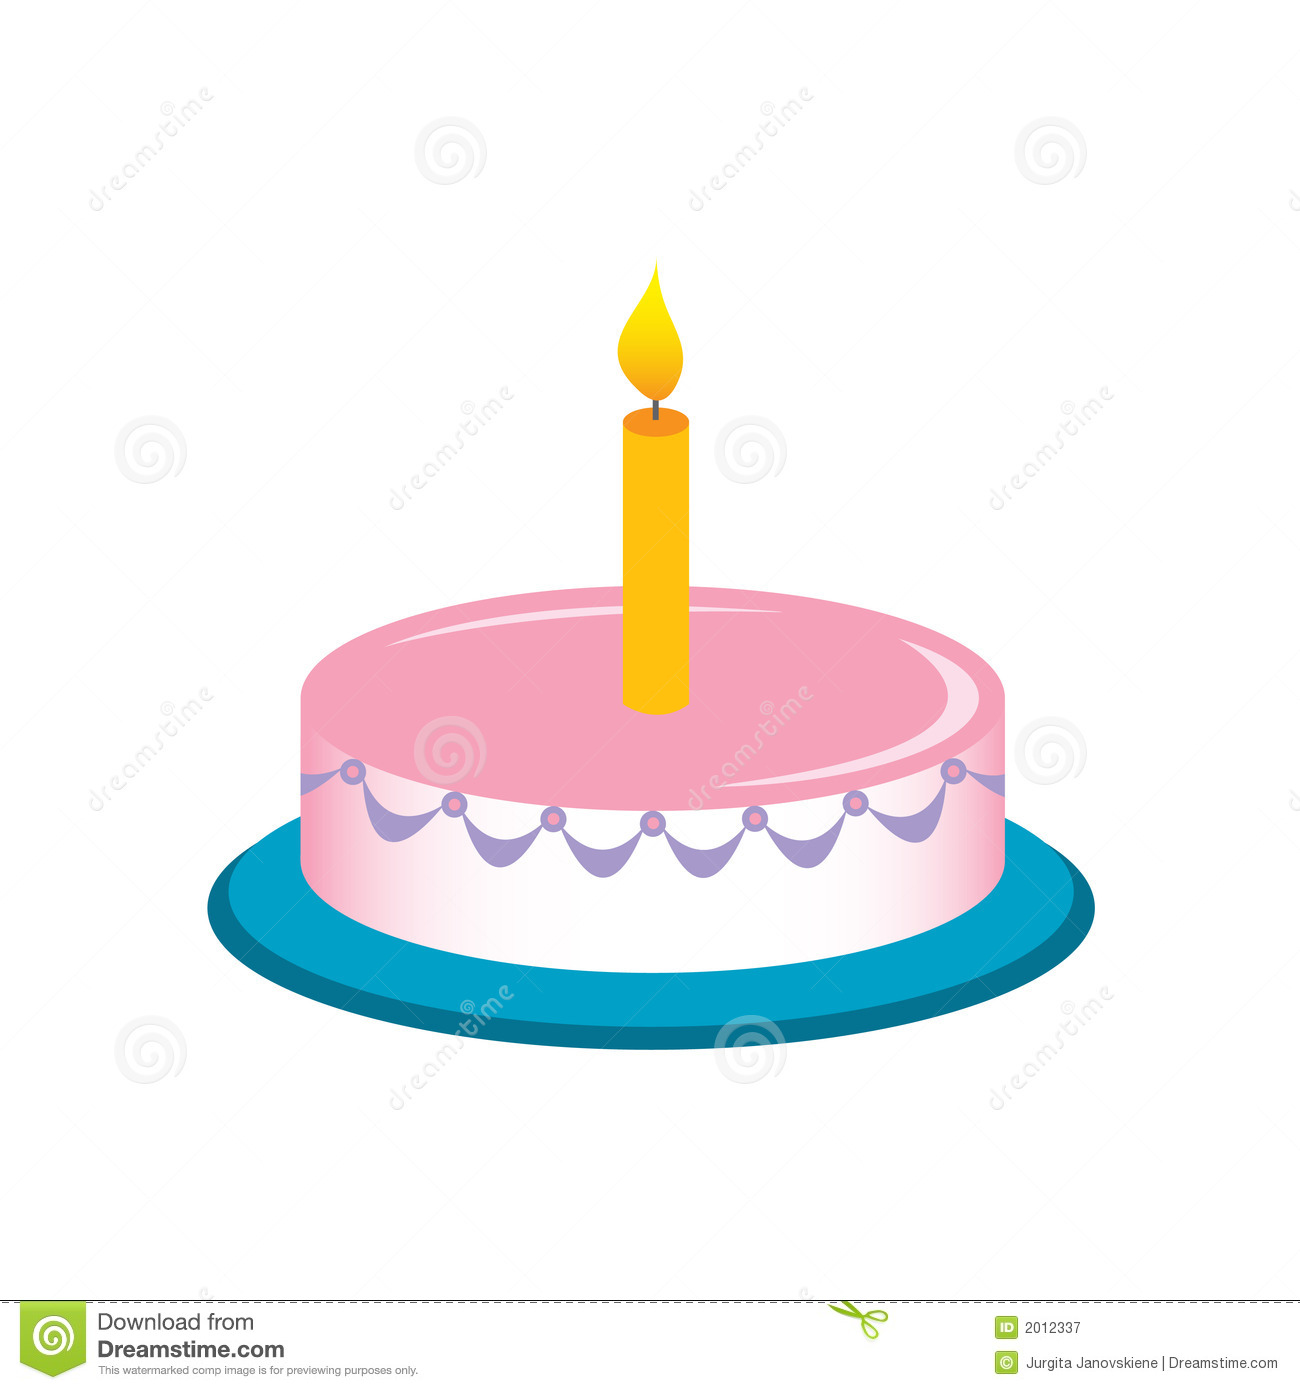 Birthday cake with one candle clipart. Royalty free stock photography